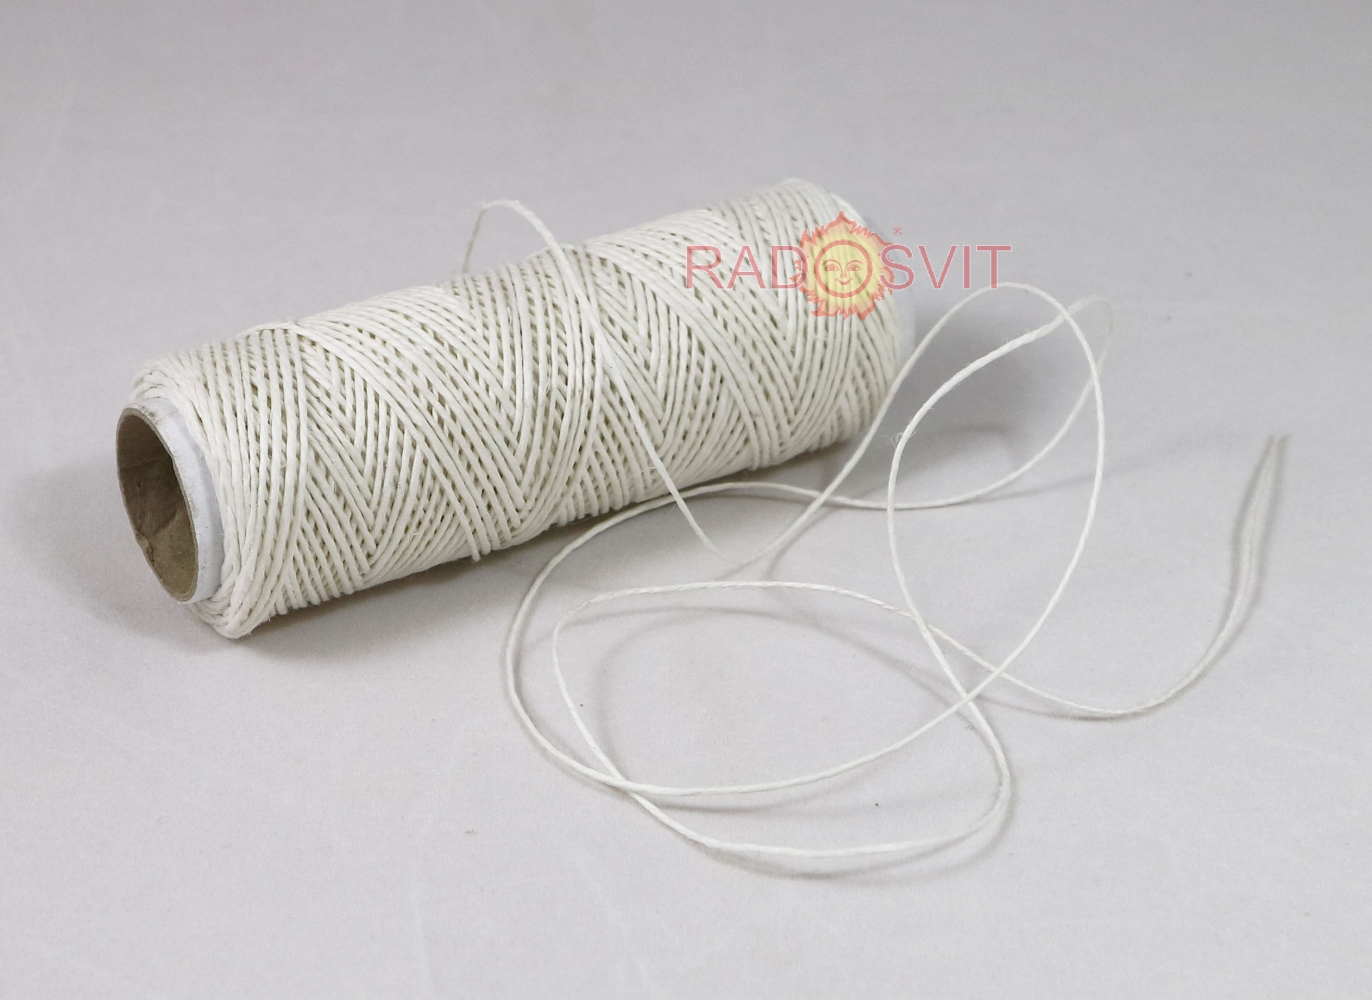 Polished linen twine, white, 50 meters - 1